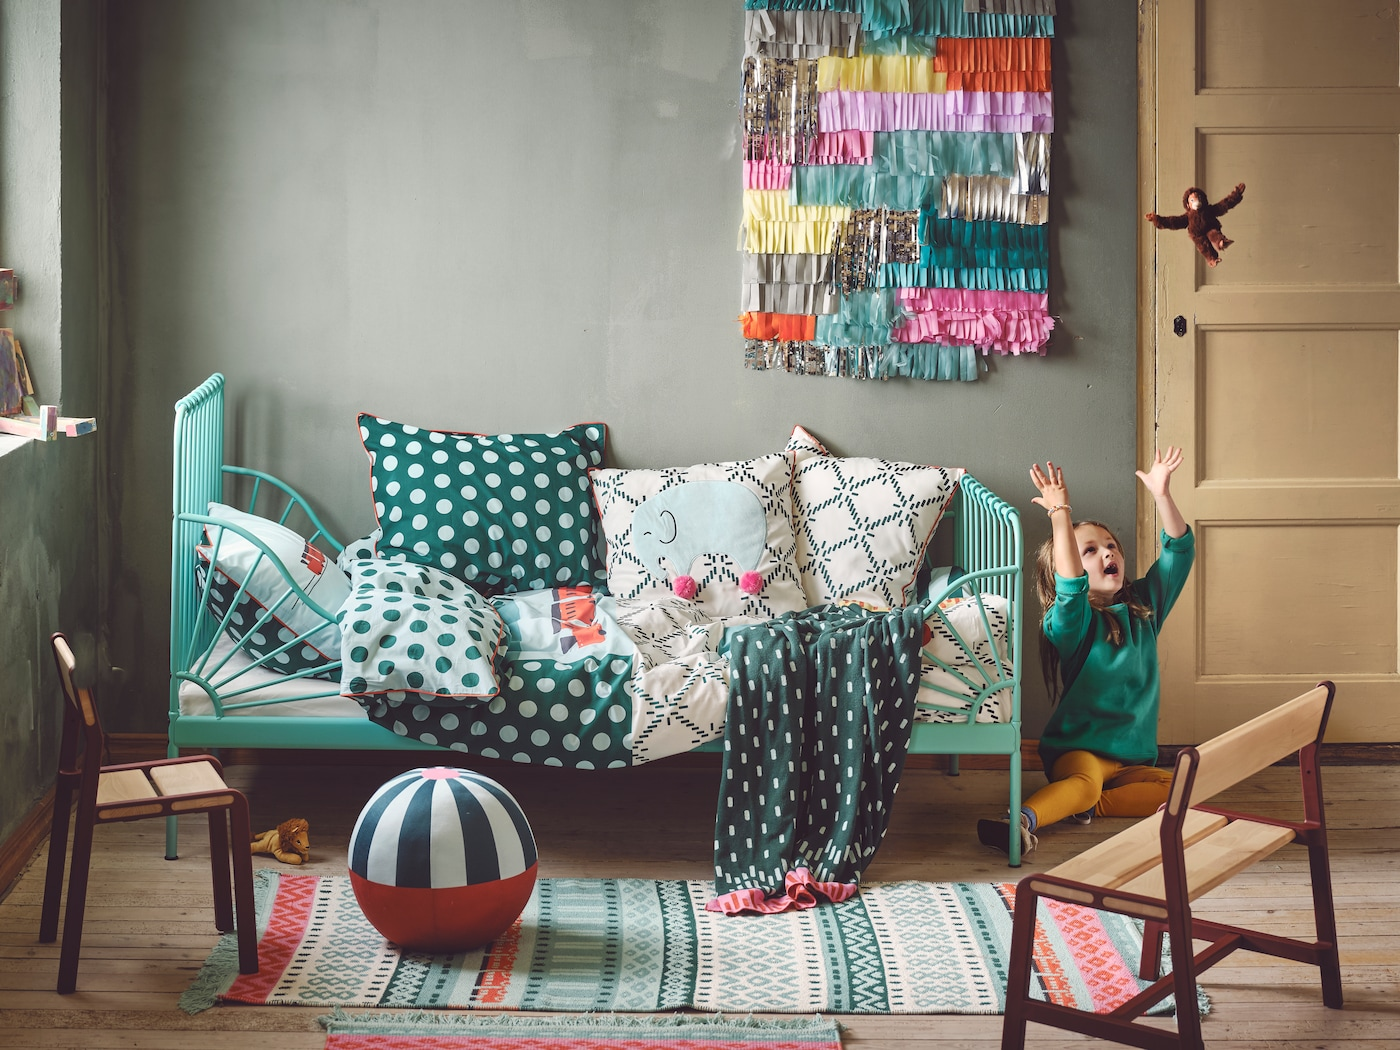 A playful Scandi-boho children's room with a green bed on the back wall and a lot of textiles on top. Small rugs and soft toys are lying on the floor.